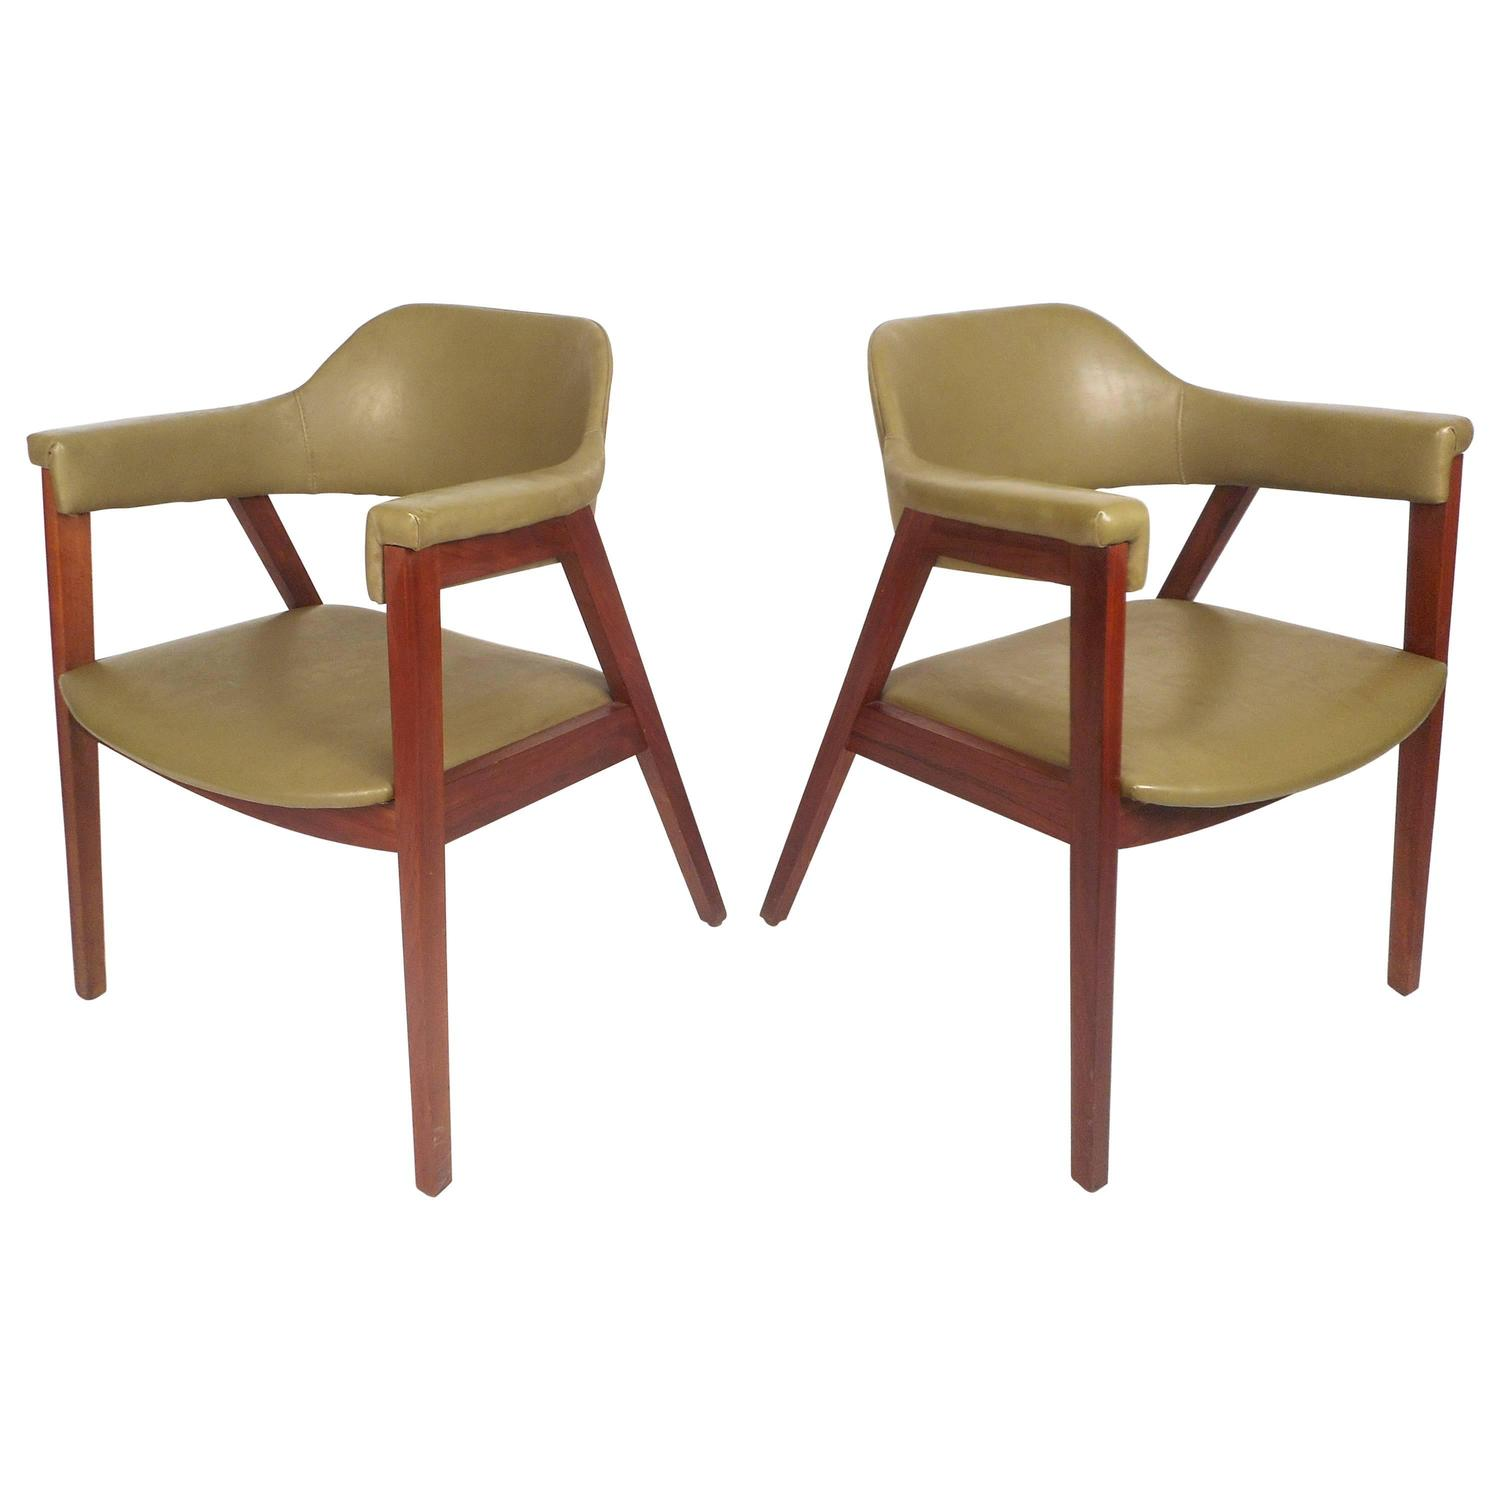 Pair of vintage danish rosewood and brushed steel side cabinets ref - Mid Century Modern Vinyl Barrel Back Chairs Pair Mid Century Danish